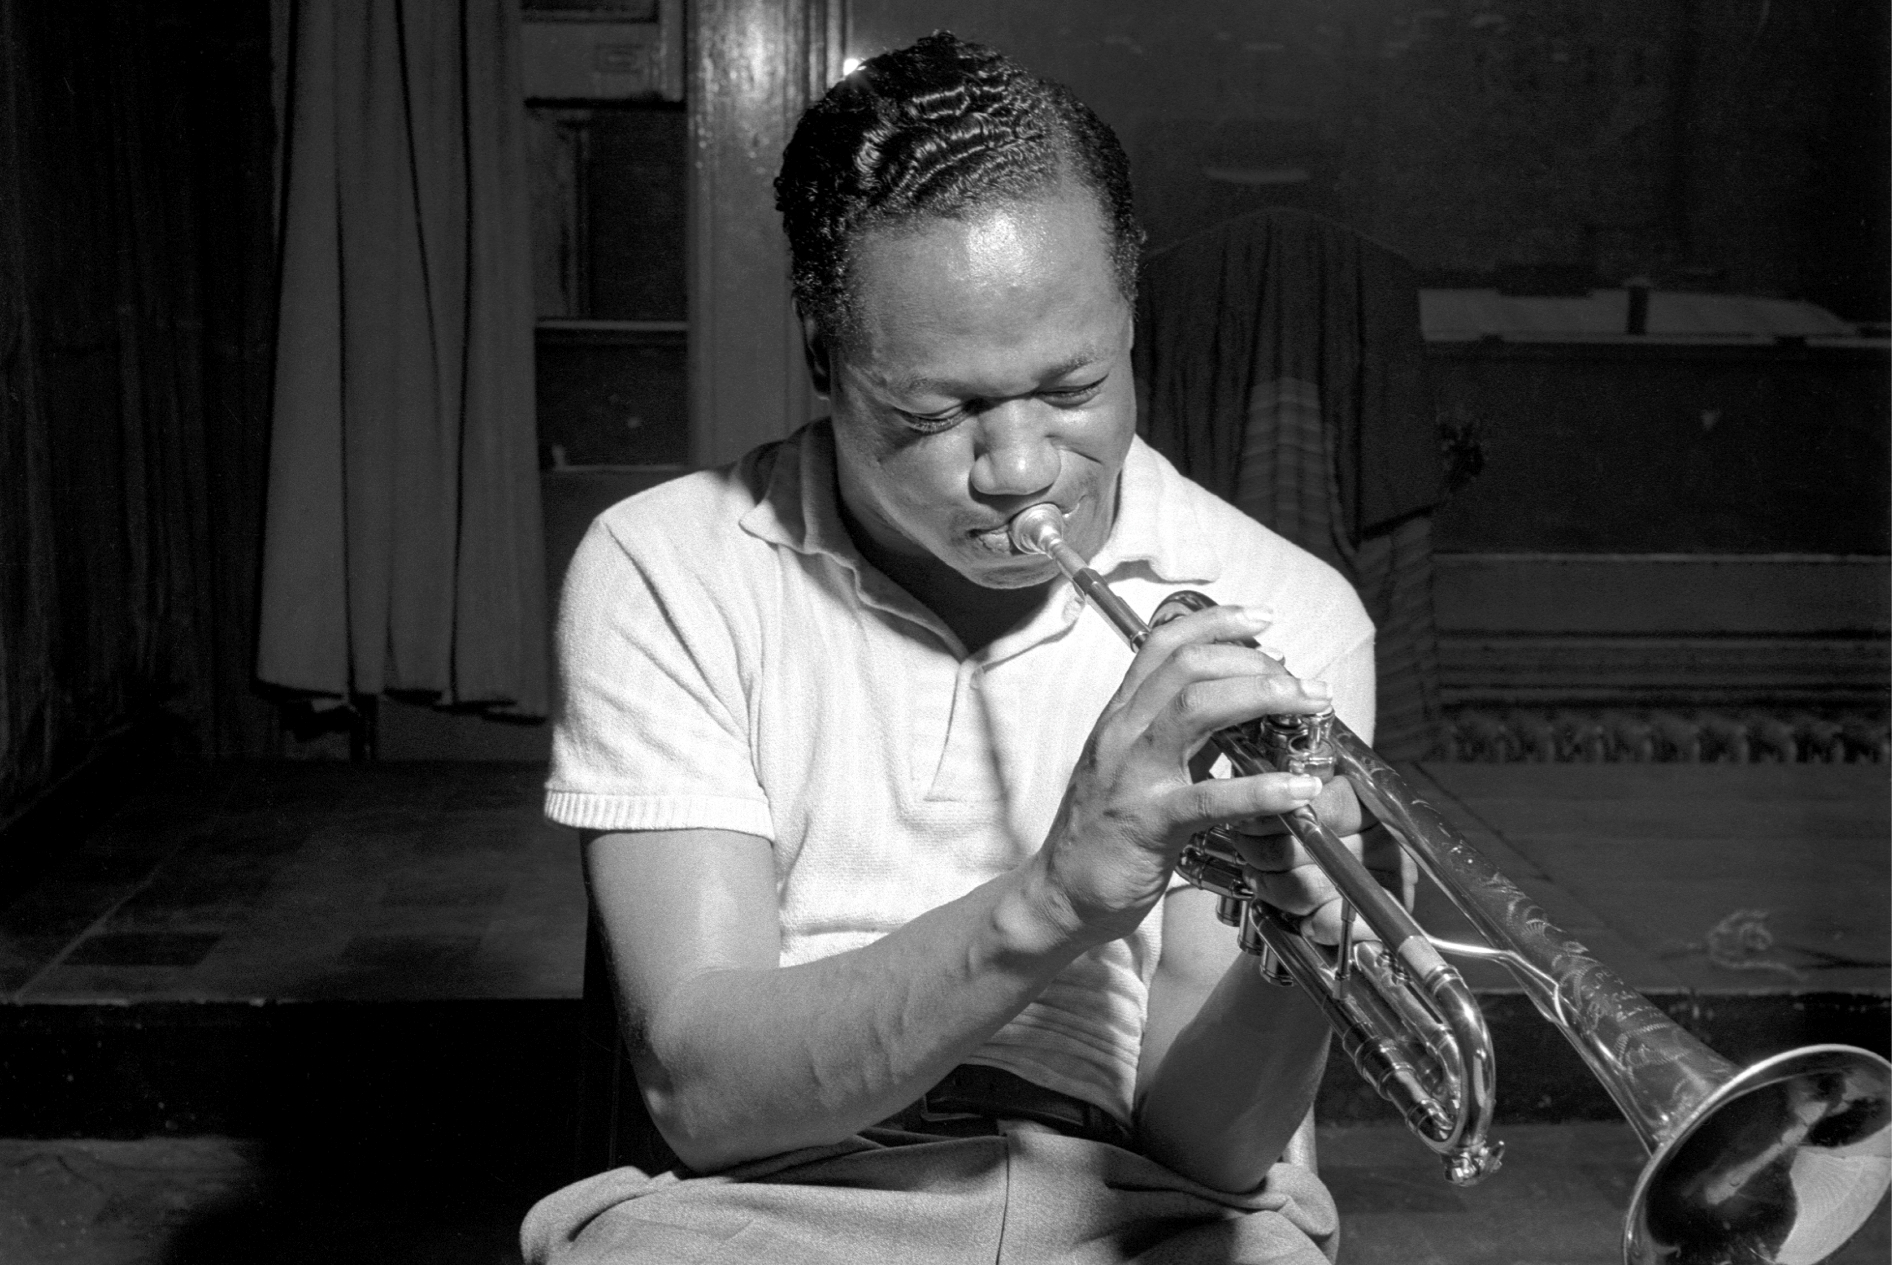 clifford brown in 1953